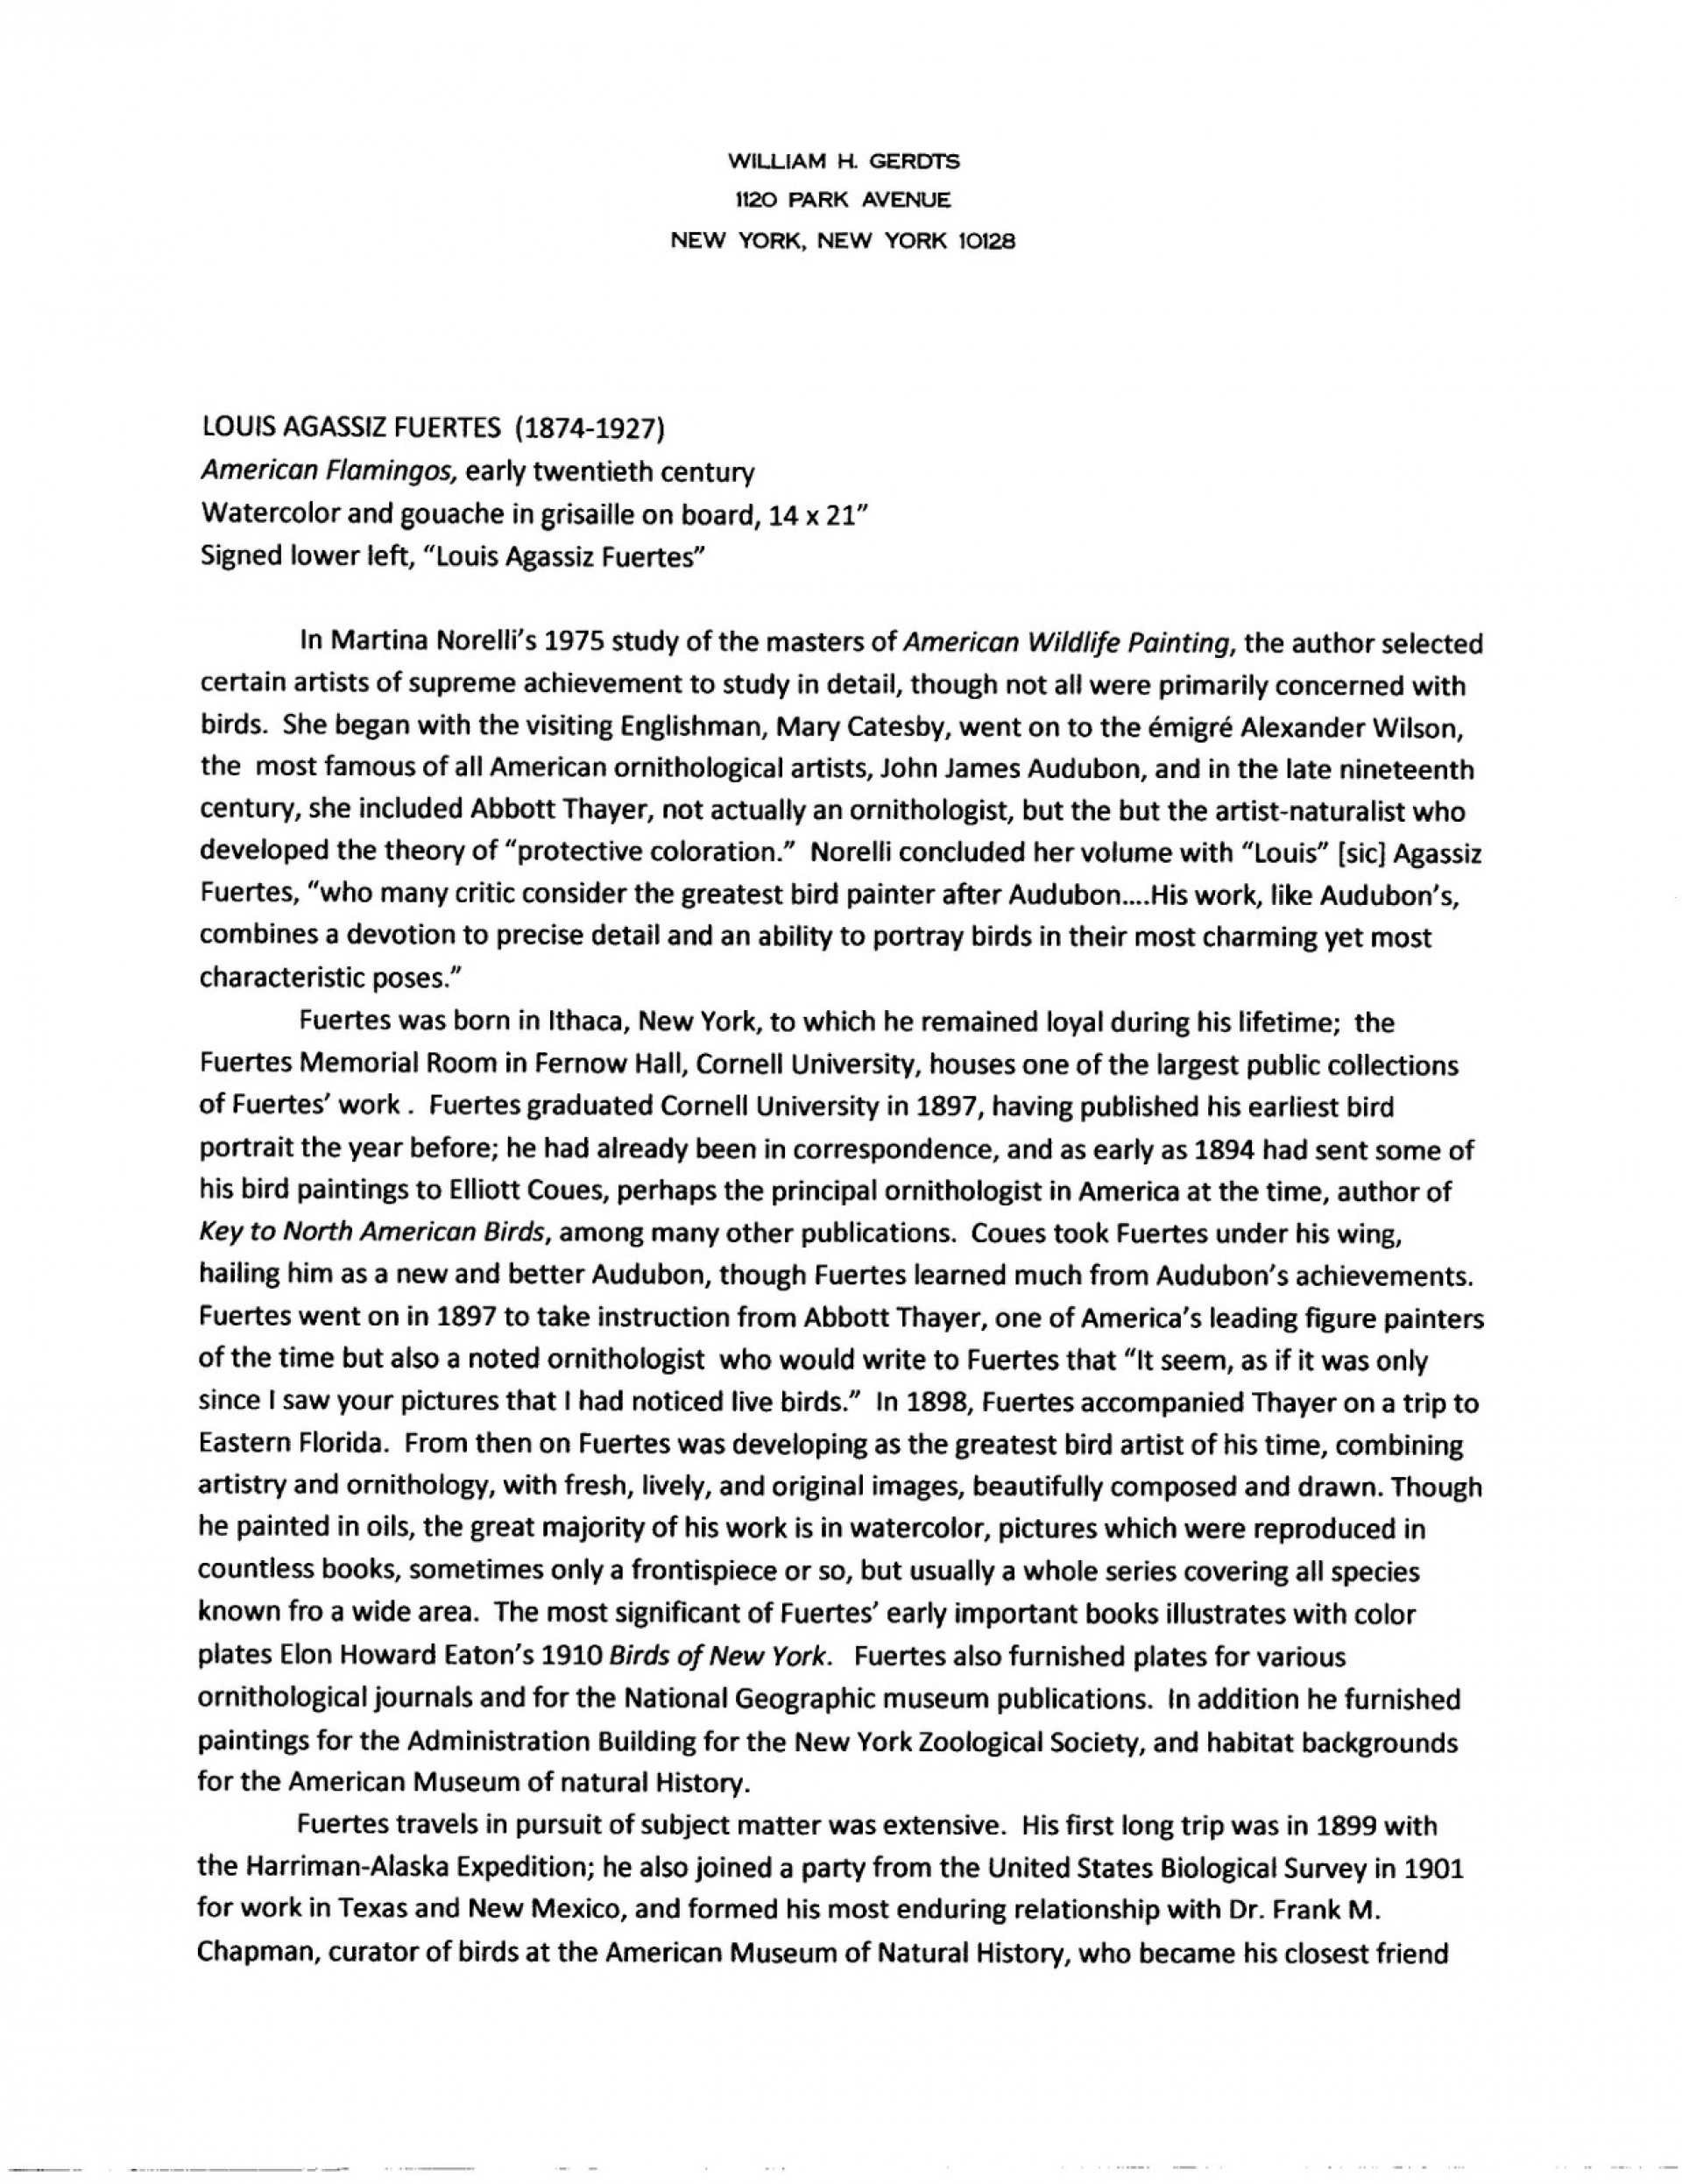 001 Essay Example Top Personal Writing For Hire University Formidable Format Narrative Scholarships Samples Graduate School 1920